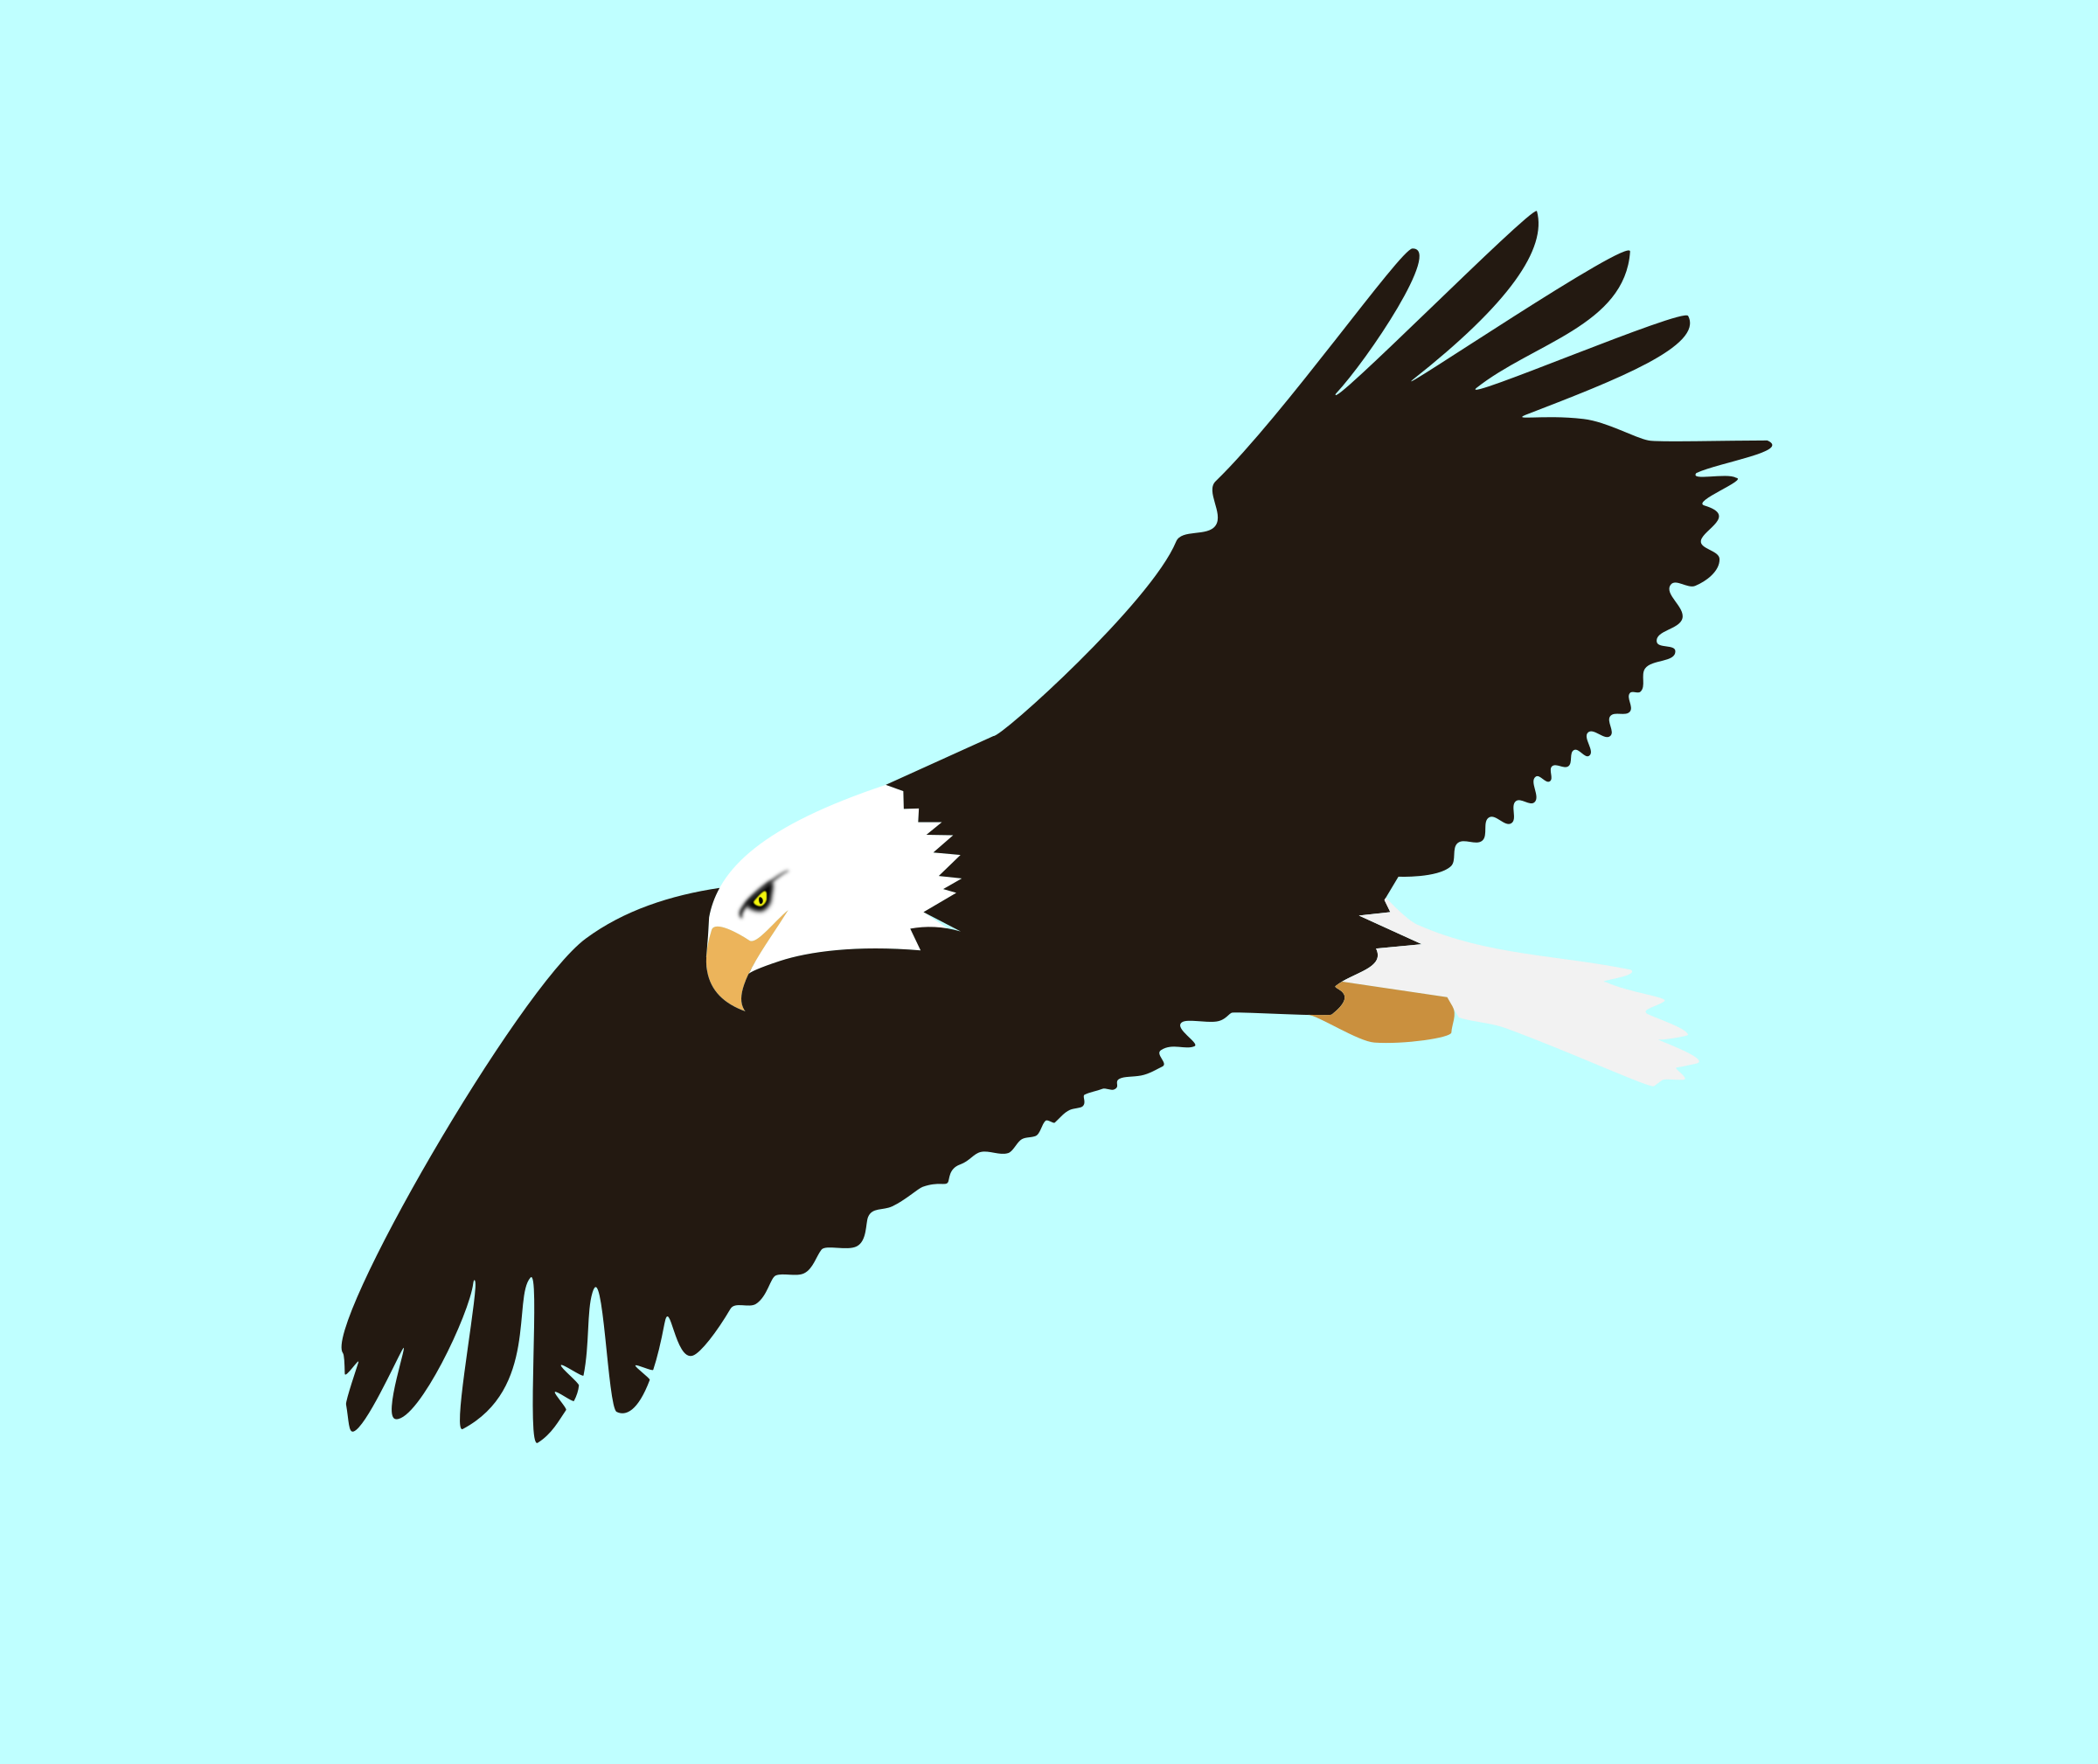 Bird soaring clipart royalty free stock Bird soaring clipart images gallery for free download | MyReal clip ... royalty free stock